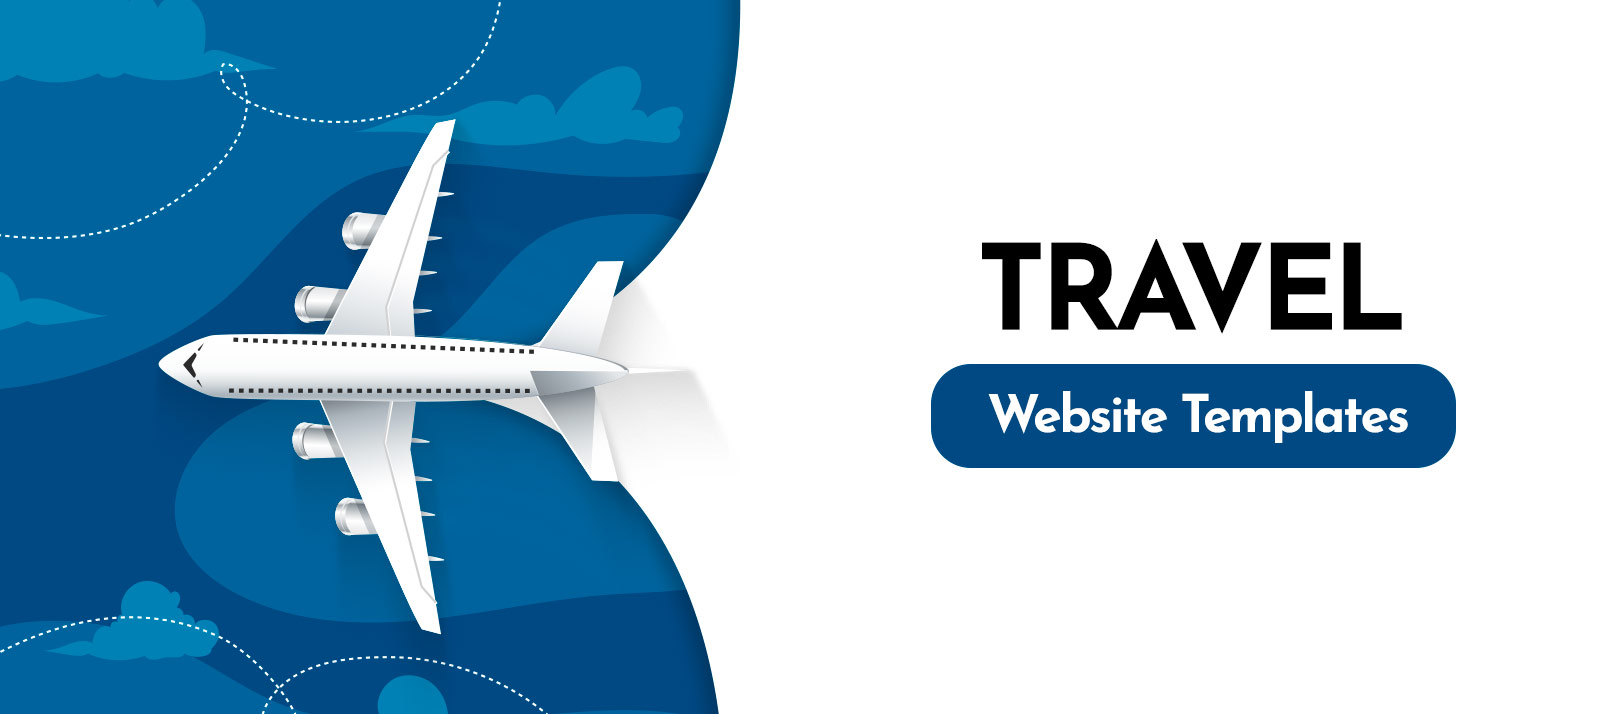 16 Powerful Travel Website Templates For Building Beautiful Travel Websites